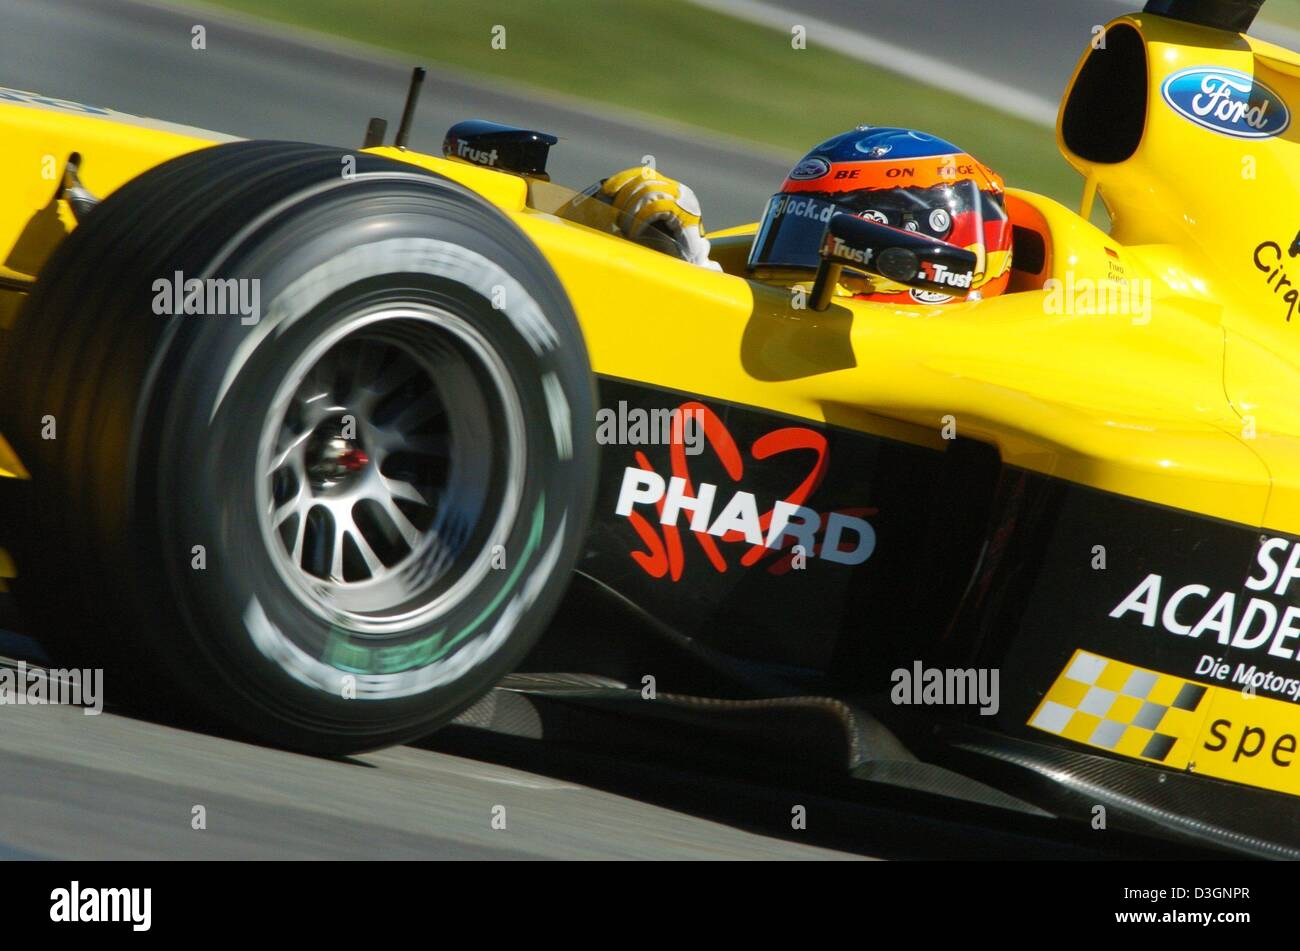 Dpa German Formula One Pilot Timo Glock Jordan Ford Steers His Racing Car Through A Curve During The Free Training At The Formula One Racetrack In